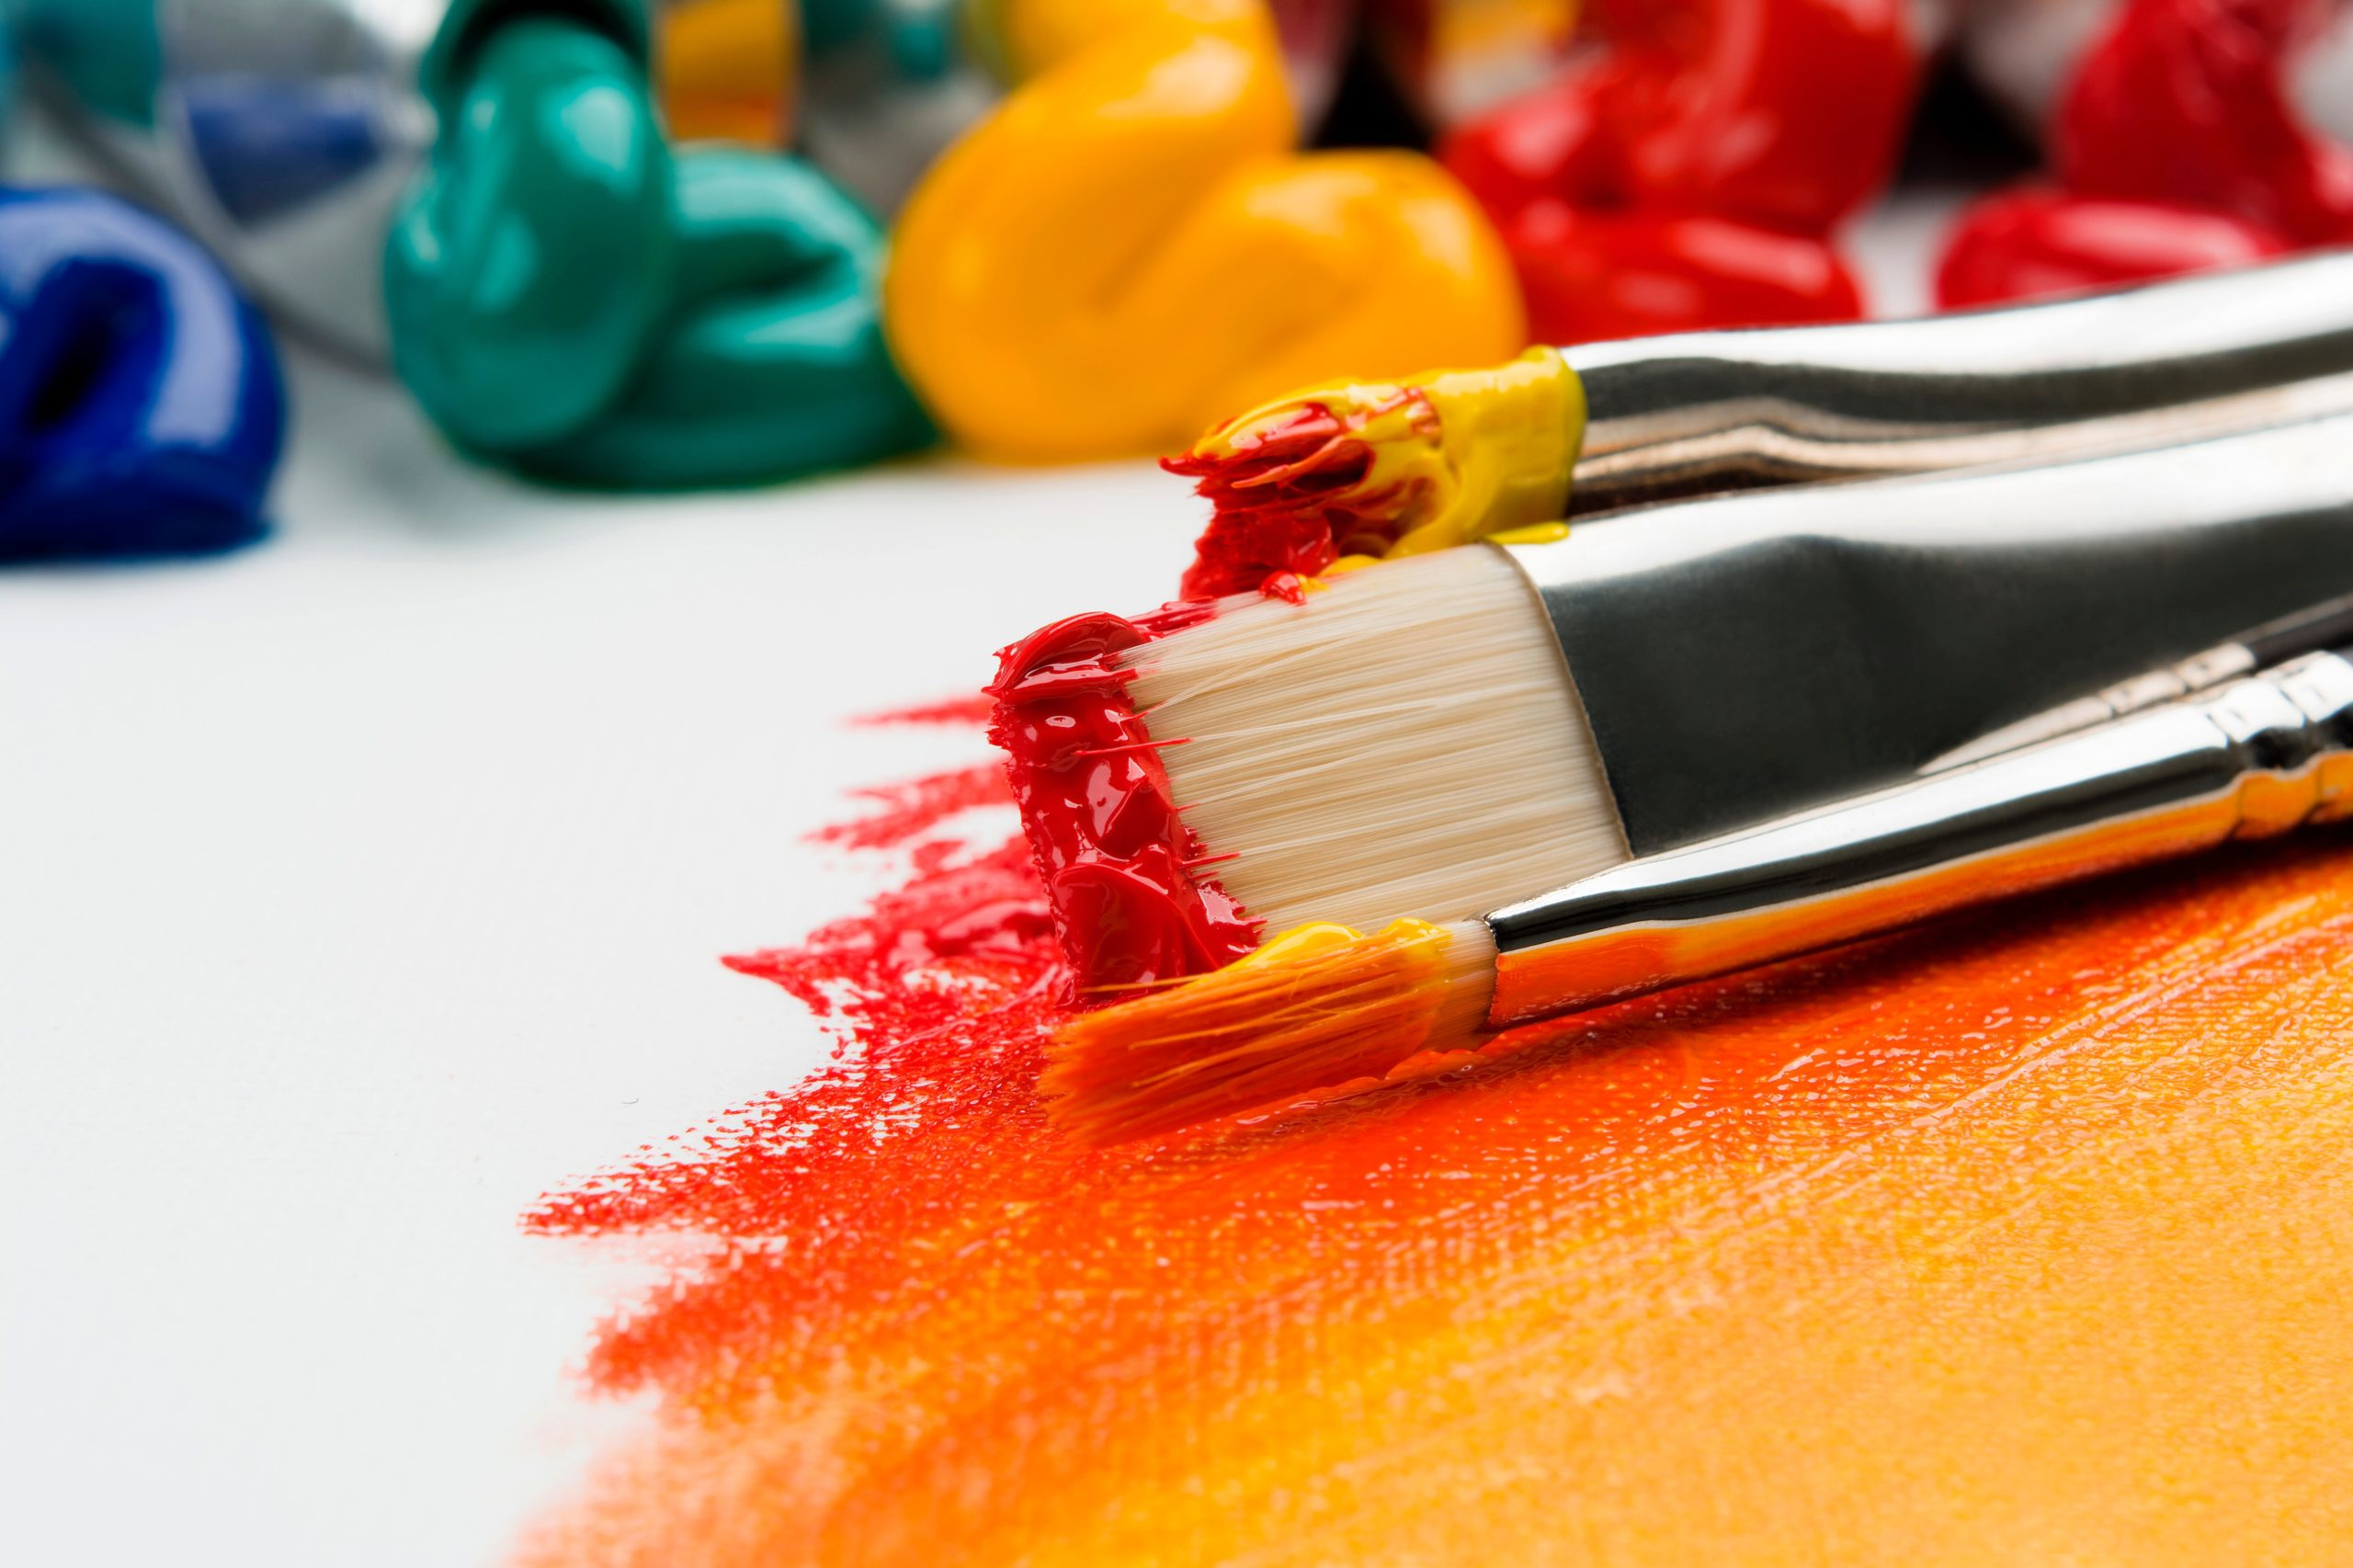 Top 5 Art Attributes You Never Knew You Could Learn